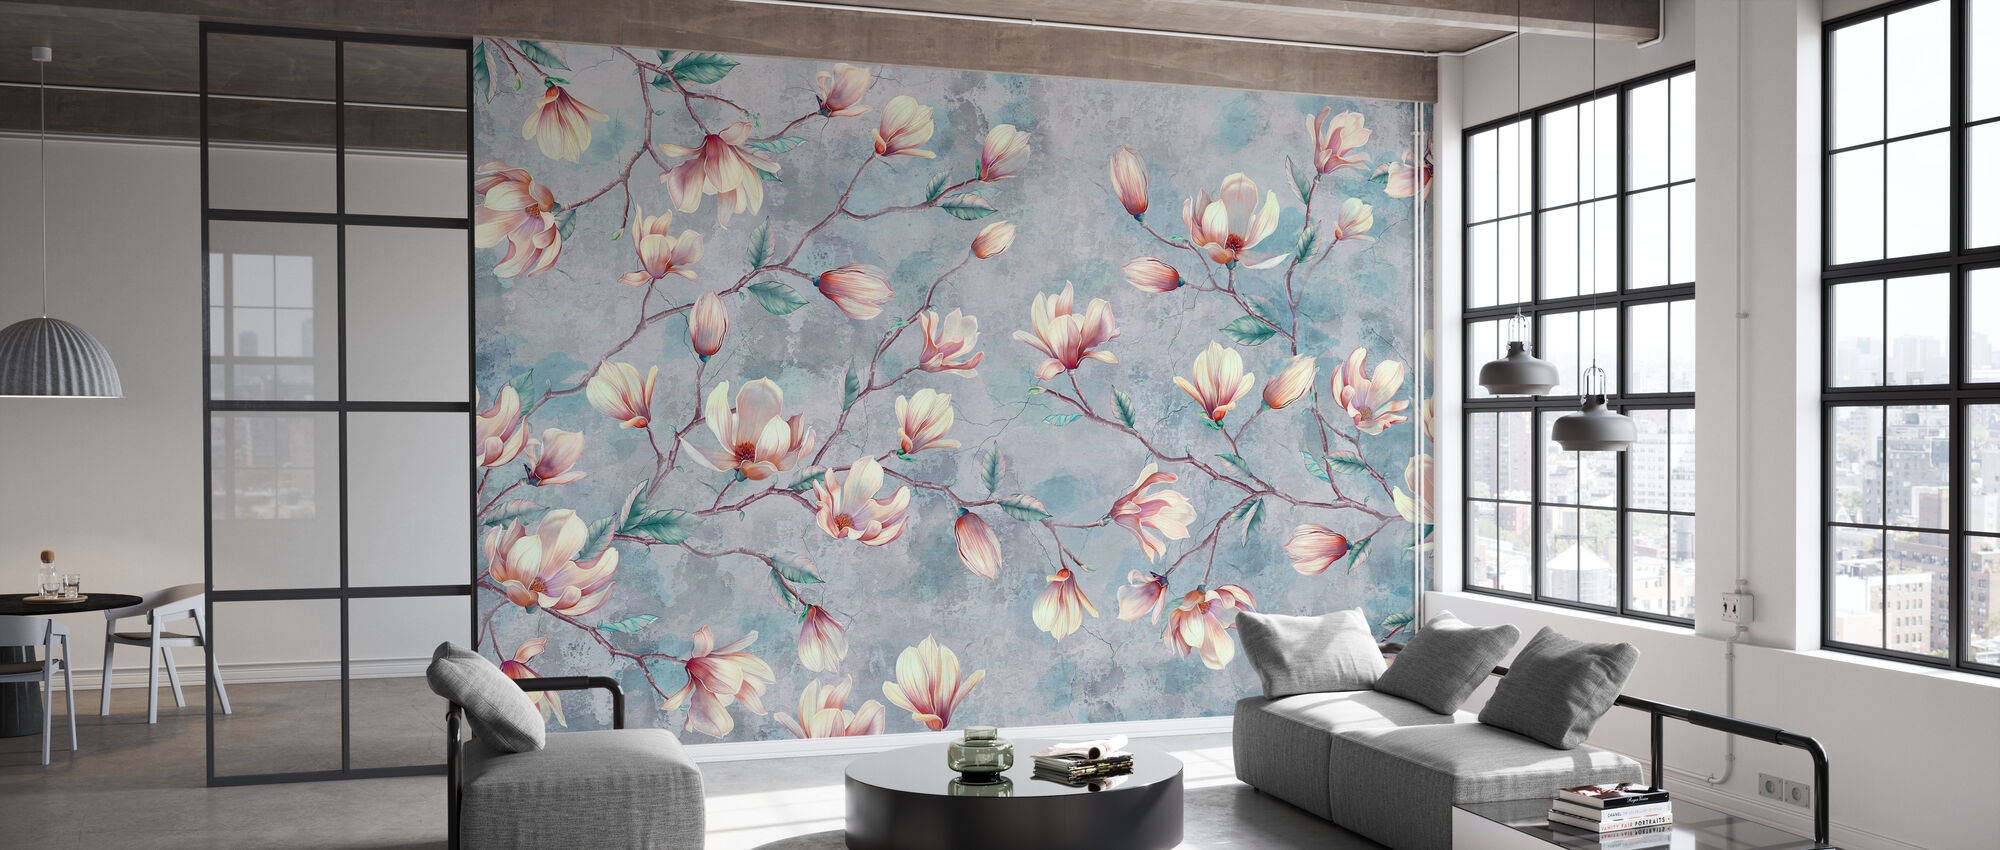 Magnolia Branches Cracked Wall - Wallpaper - Office